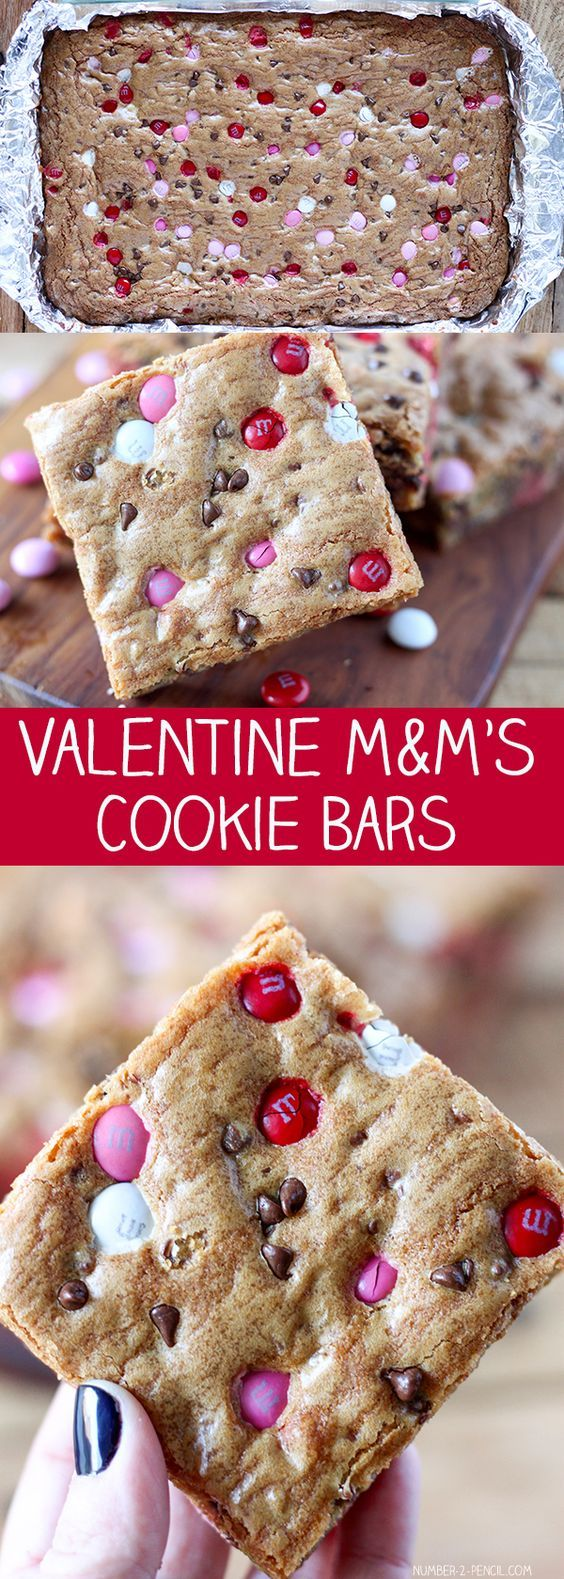 M&M'S Valentine's Day Cookie Bars